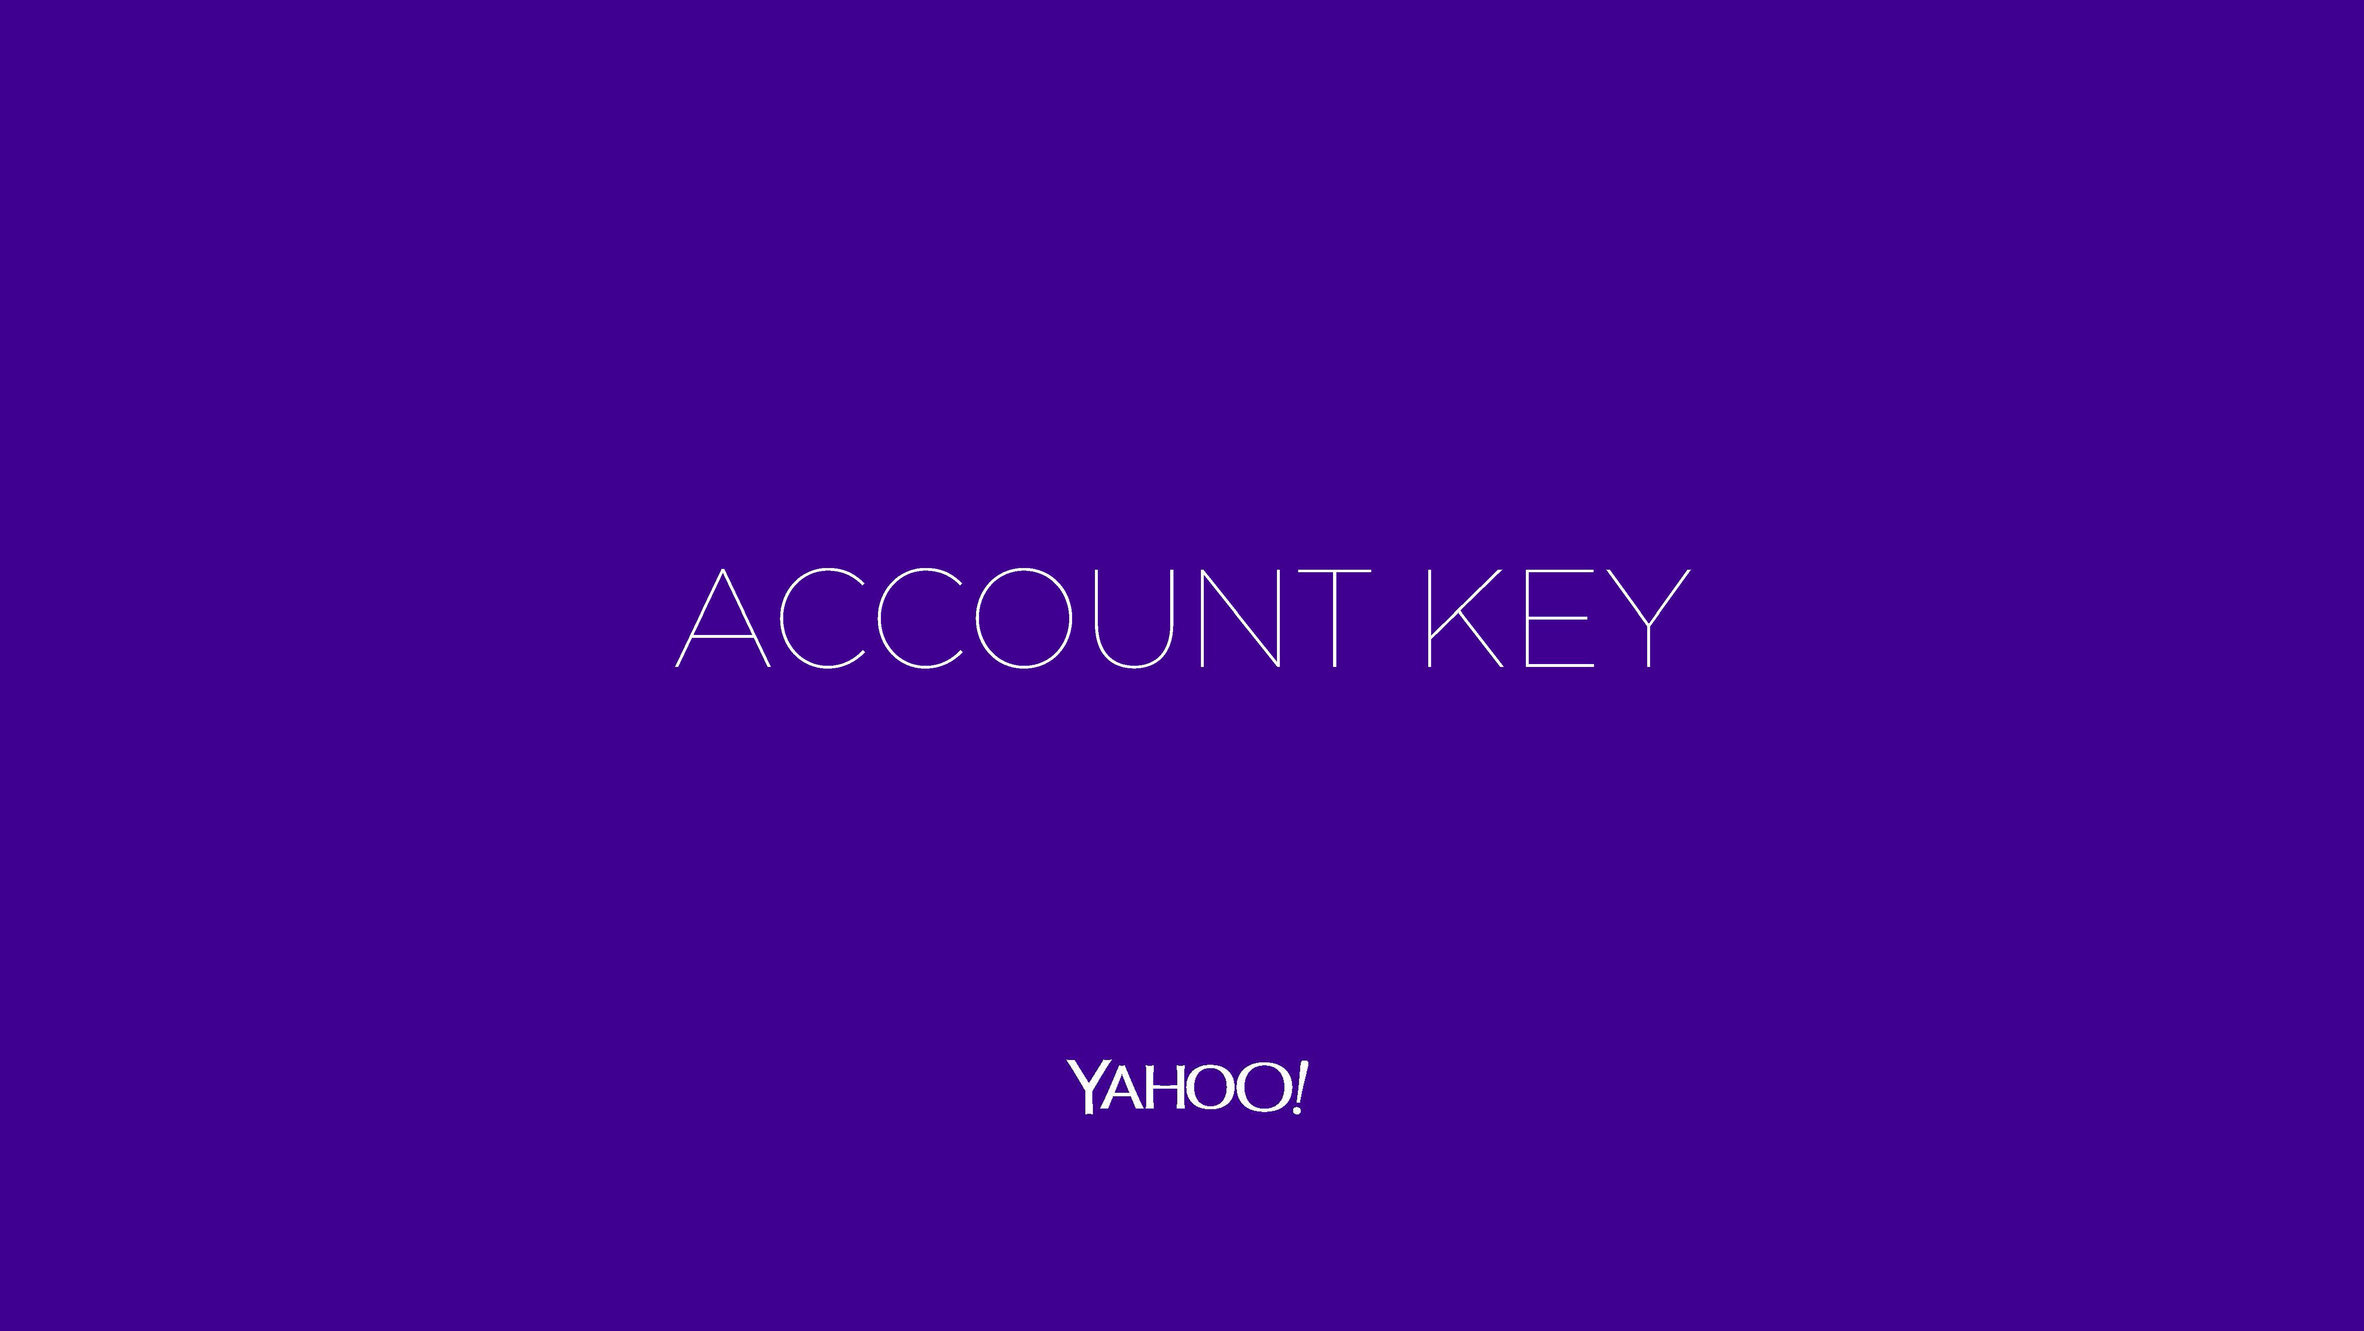 Yahoo! Account Key Campaign